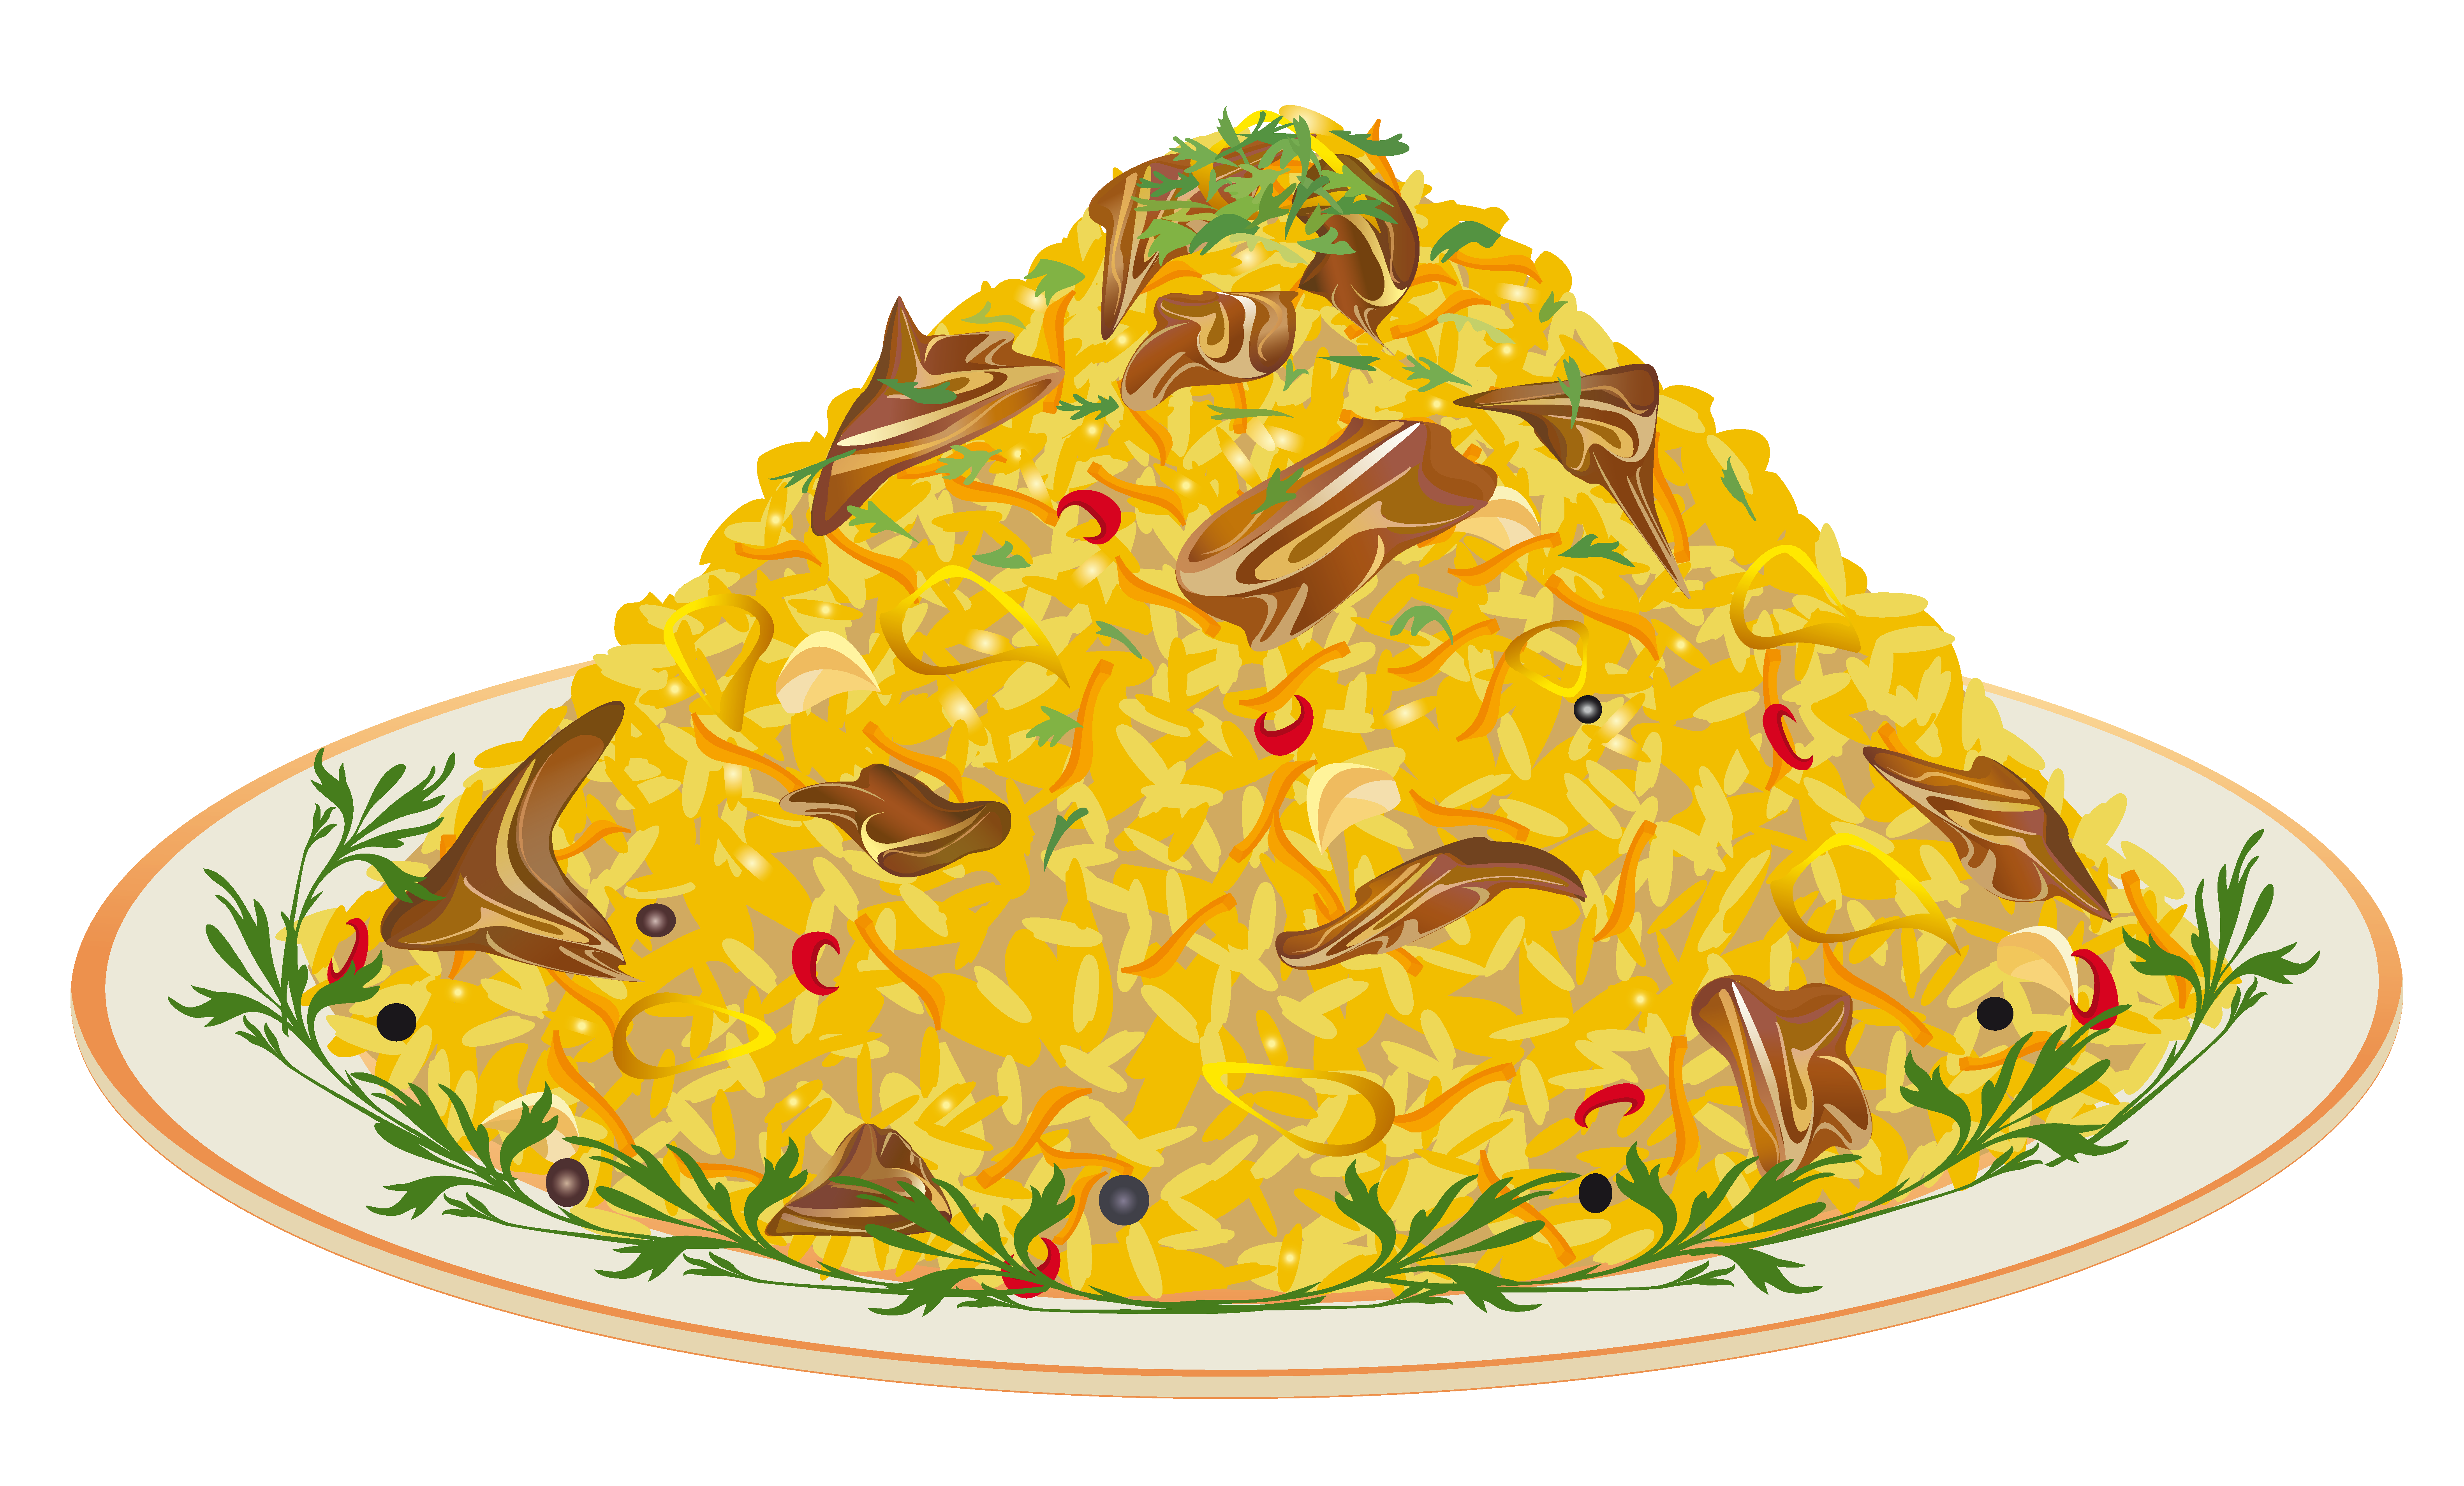 Food dish clipart. Meat png picture gallery